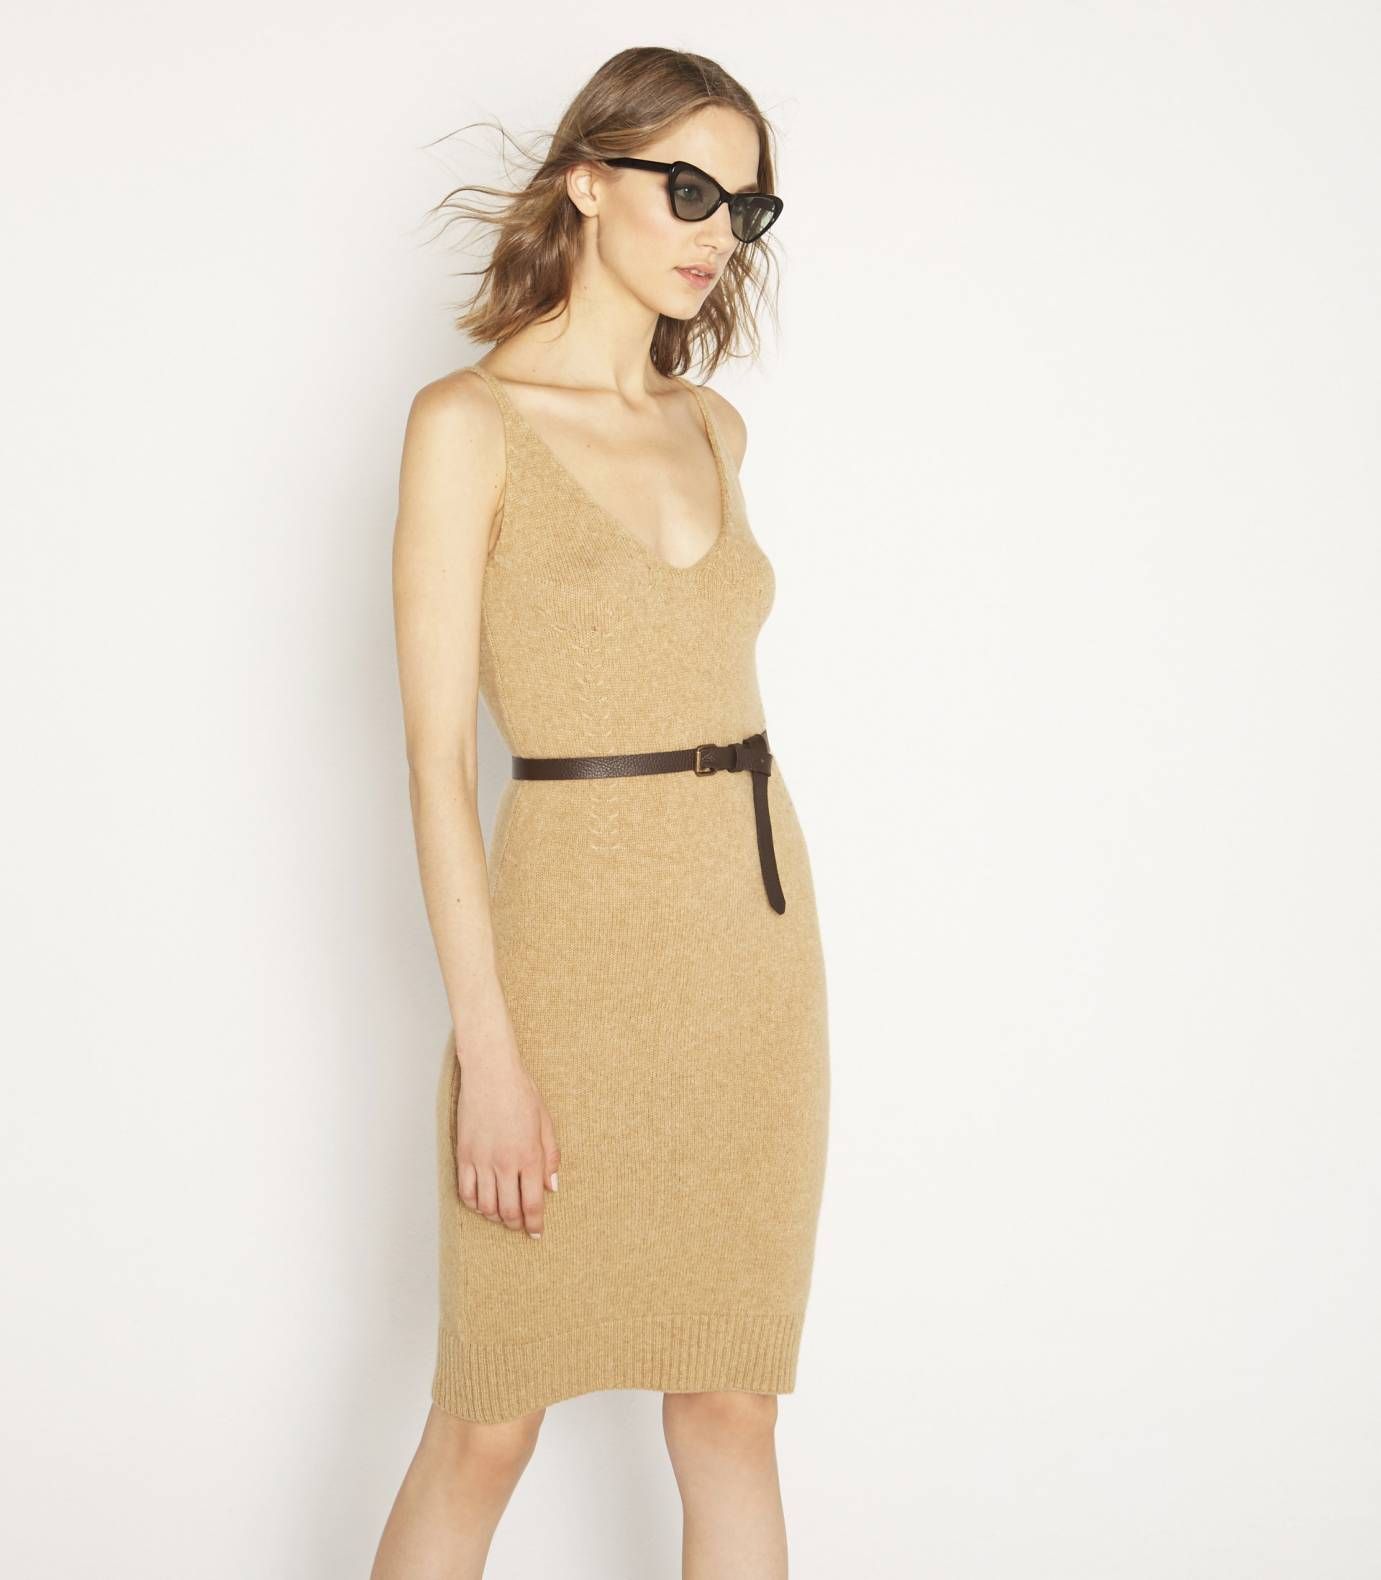 Camel hair and tricot dress